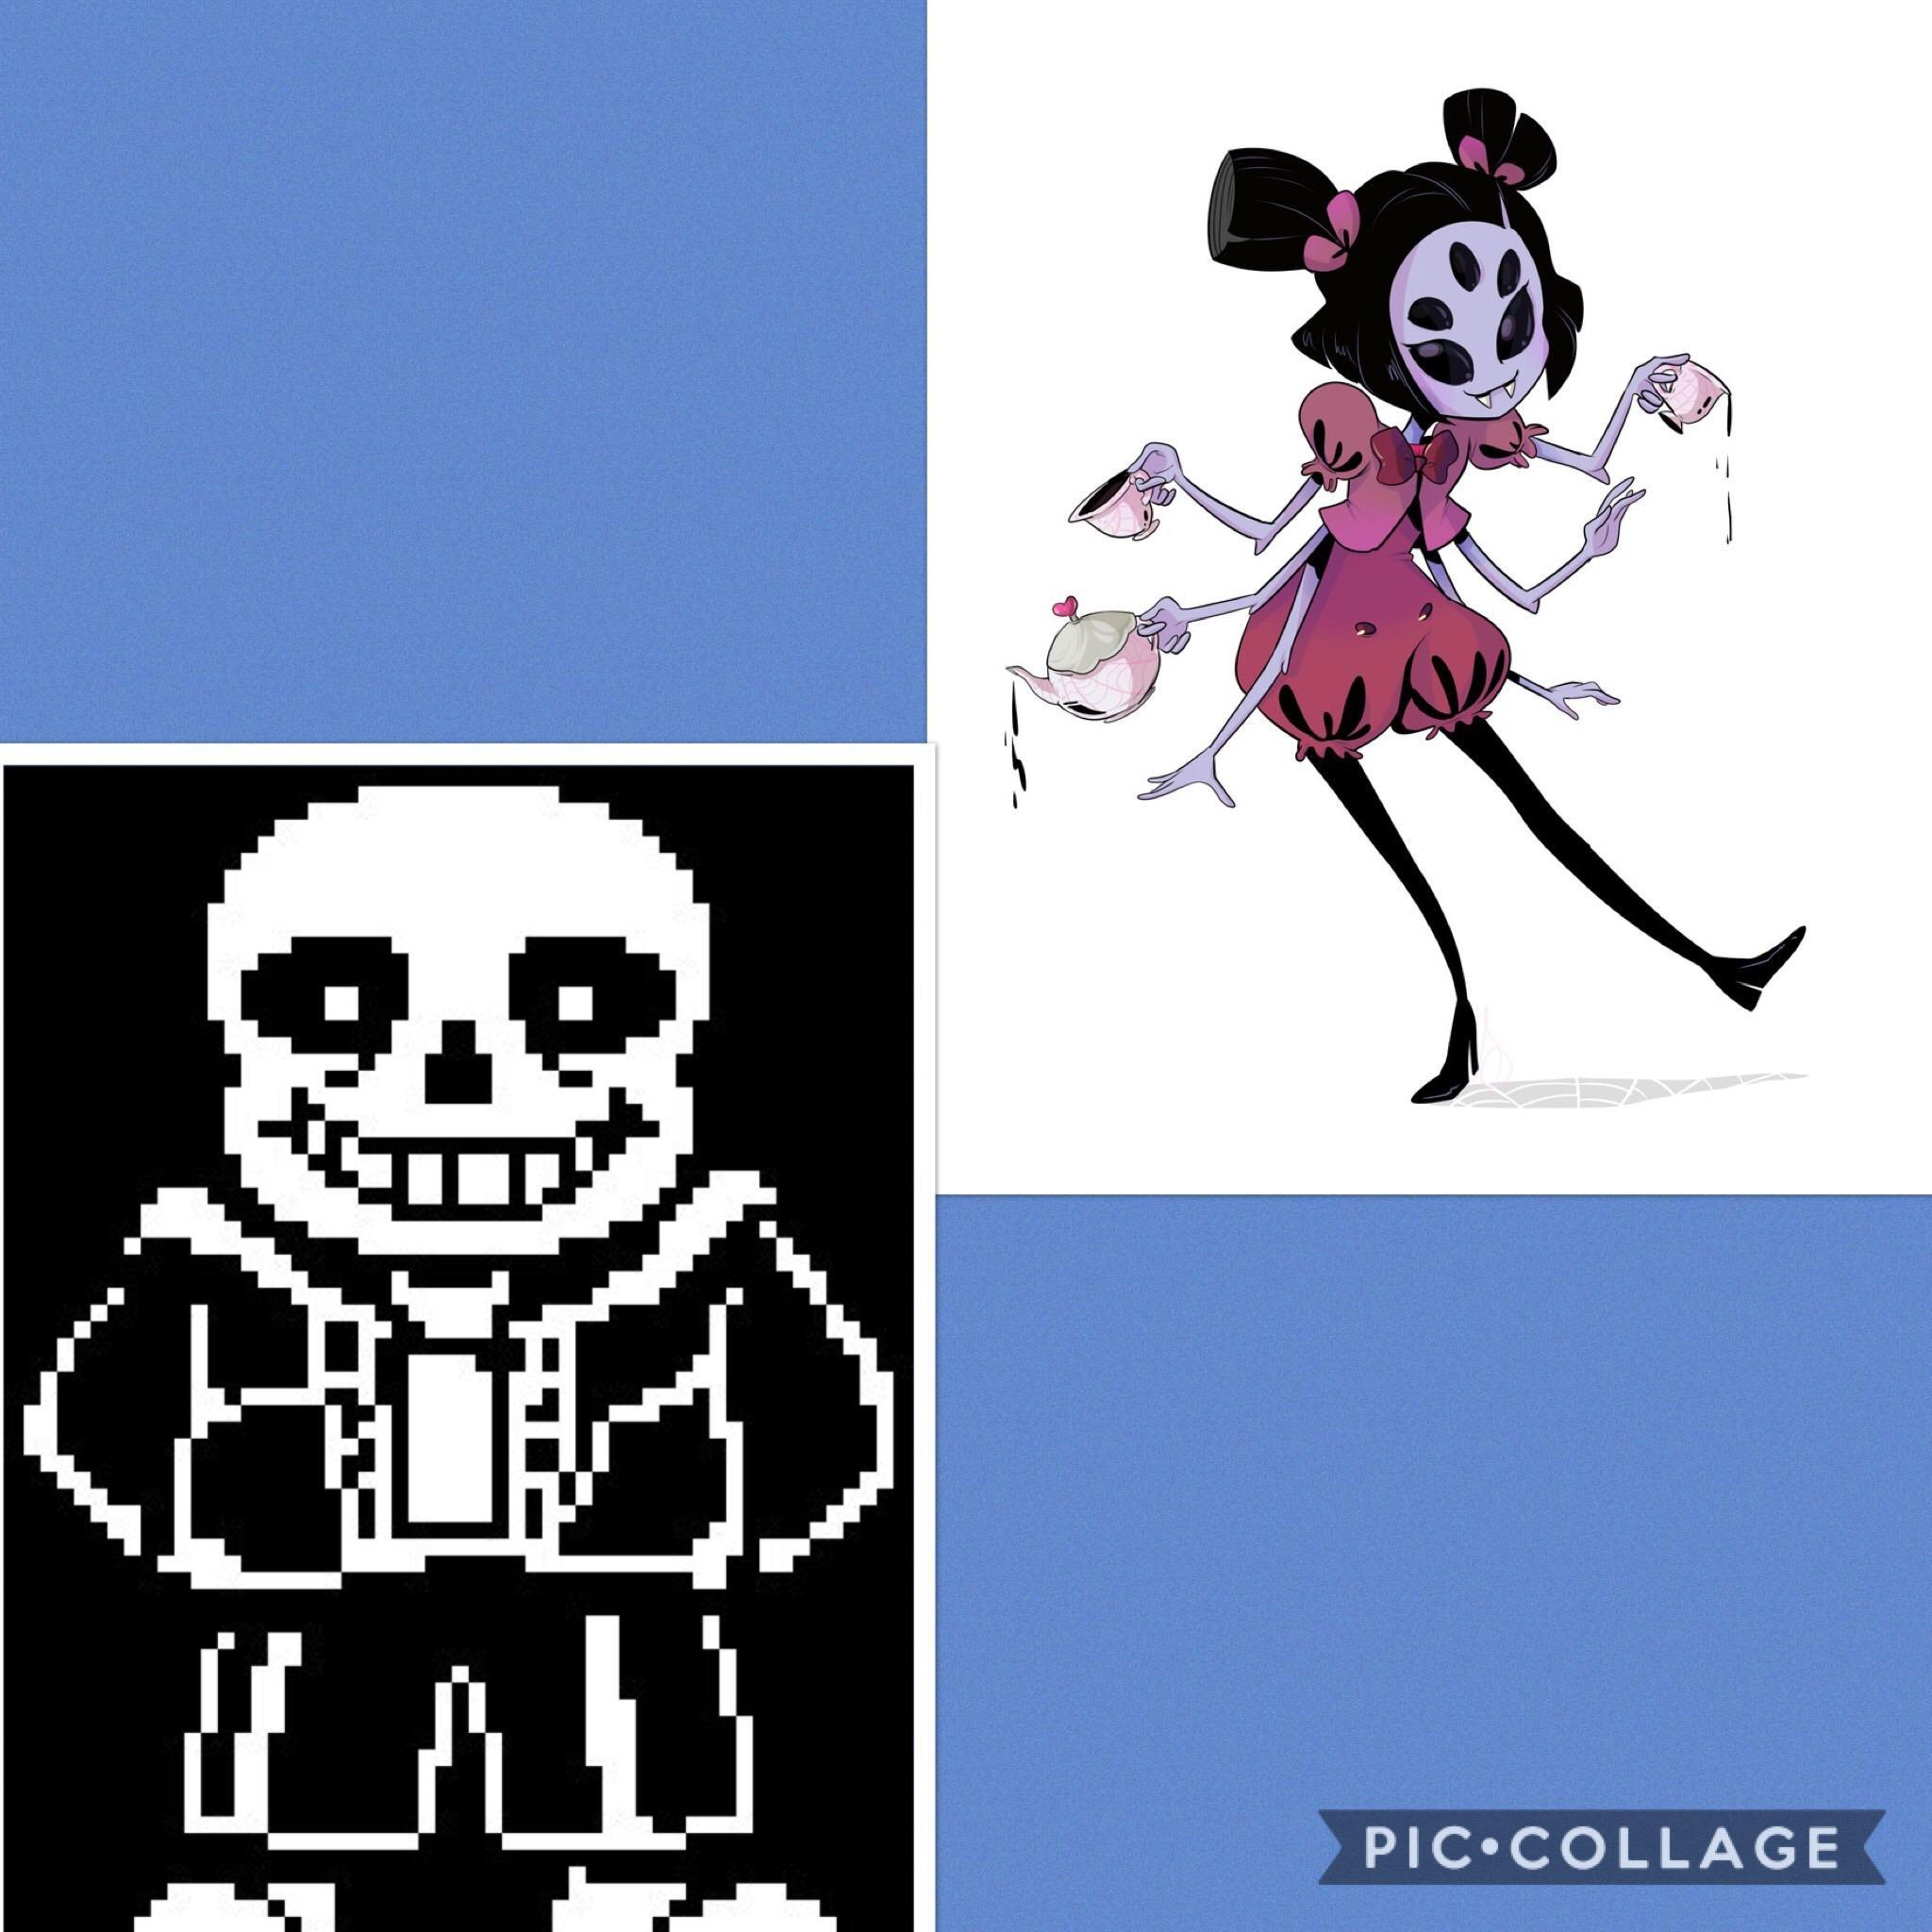 Who's cooler: Sans or Muffet?